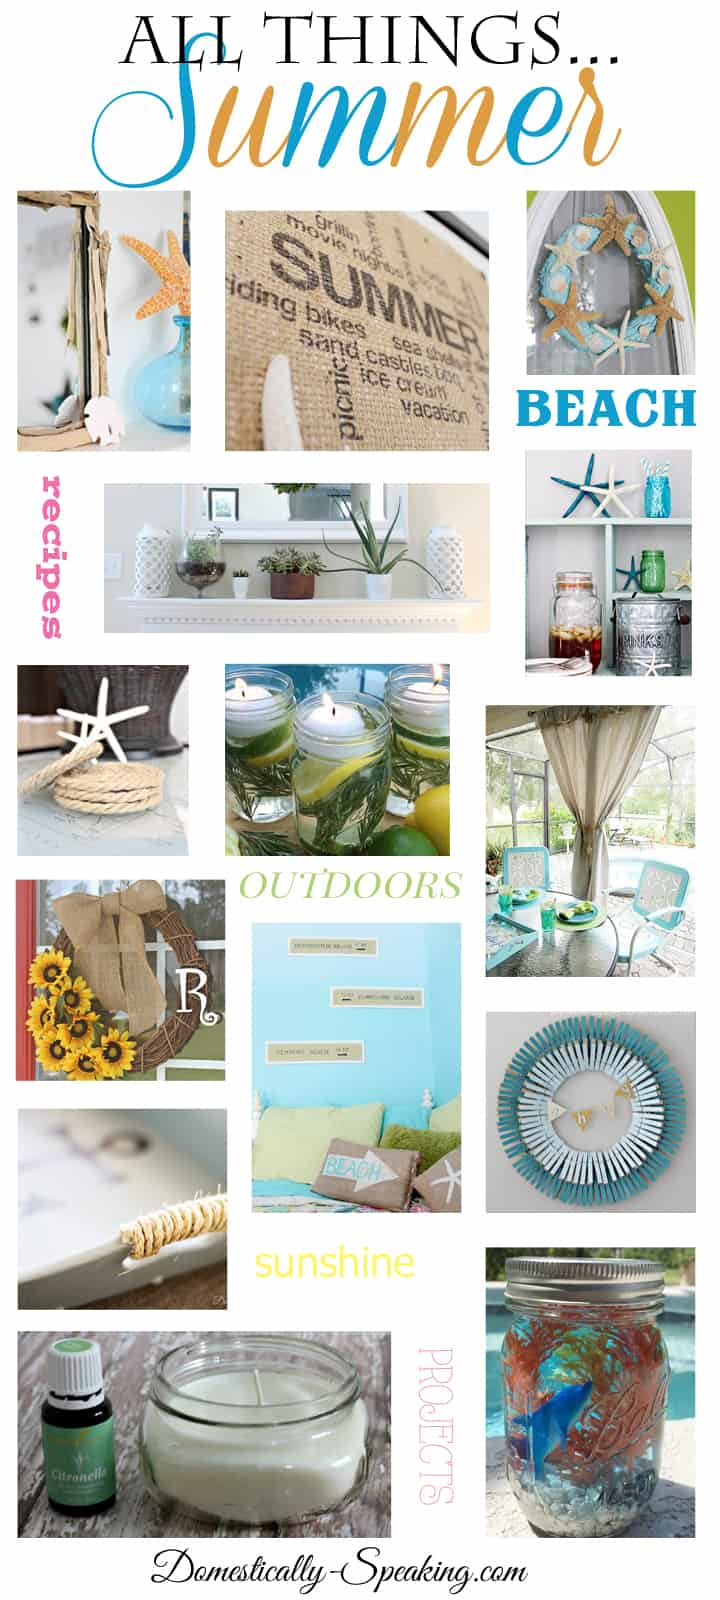 All Things Summer… Over 100 Summer Recipes, Crafts and DIY